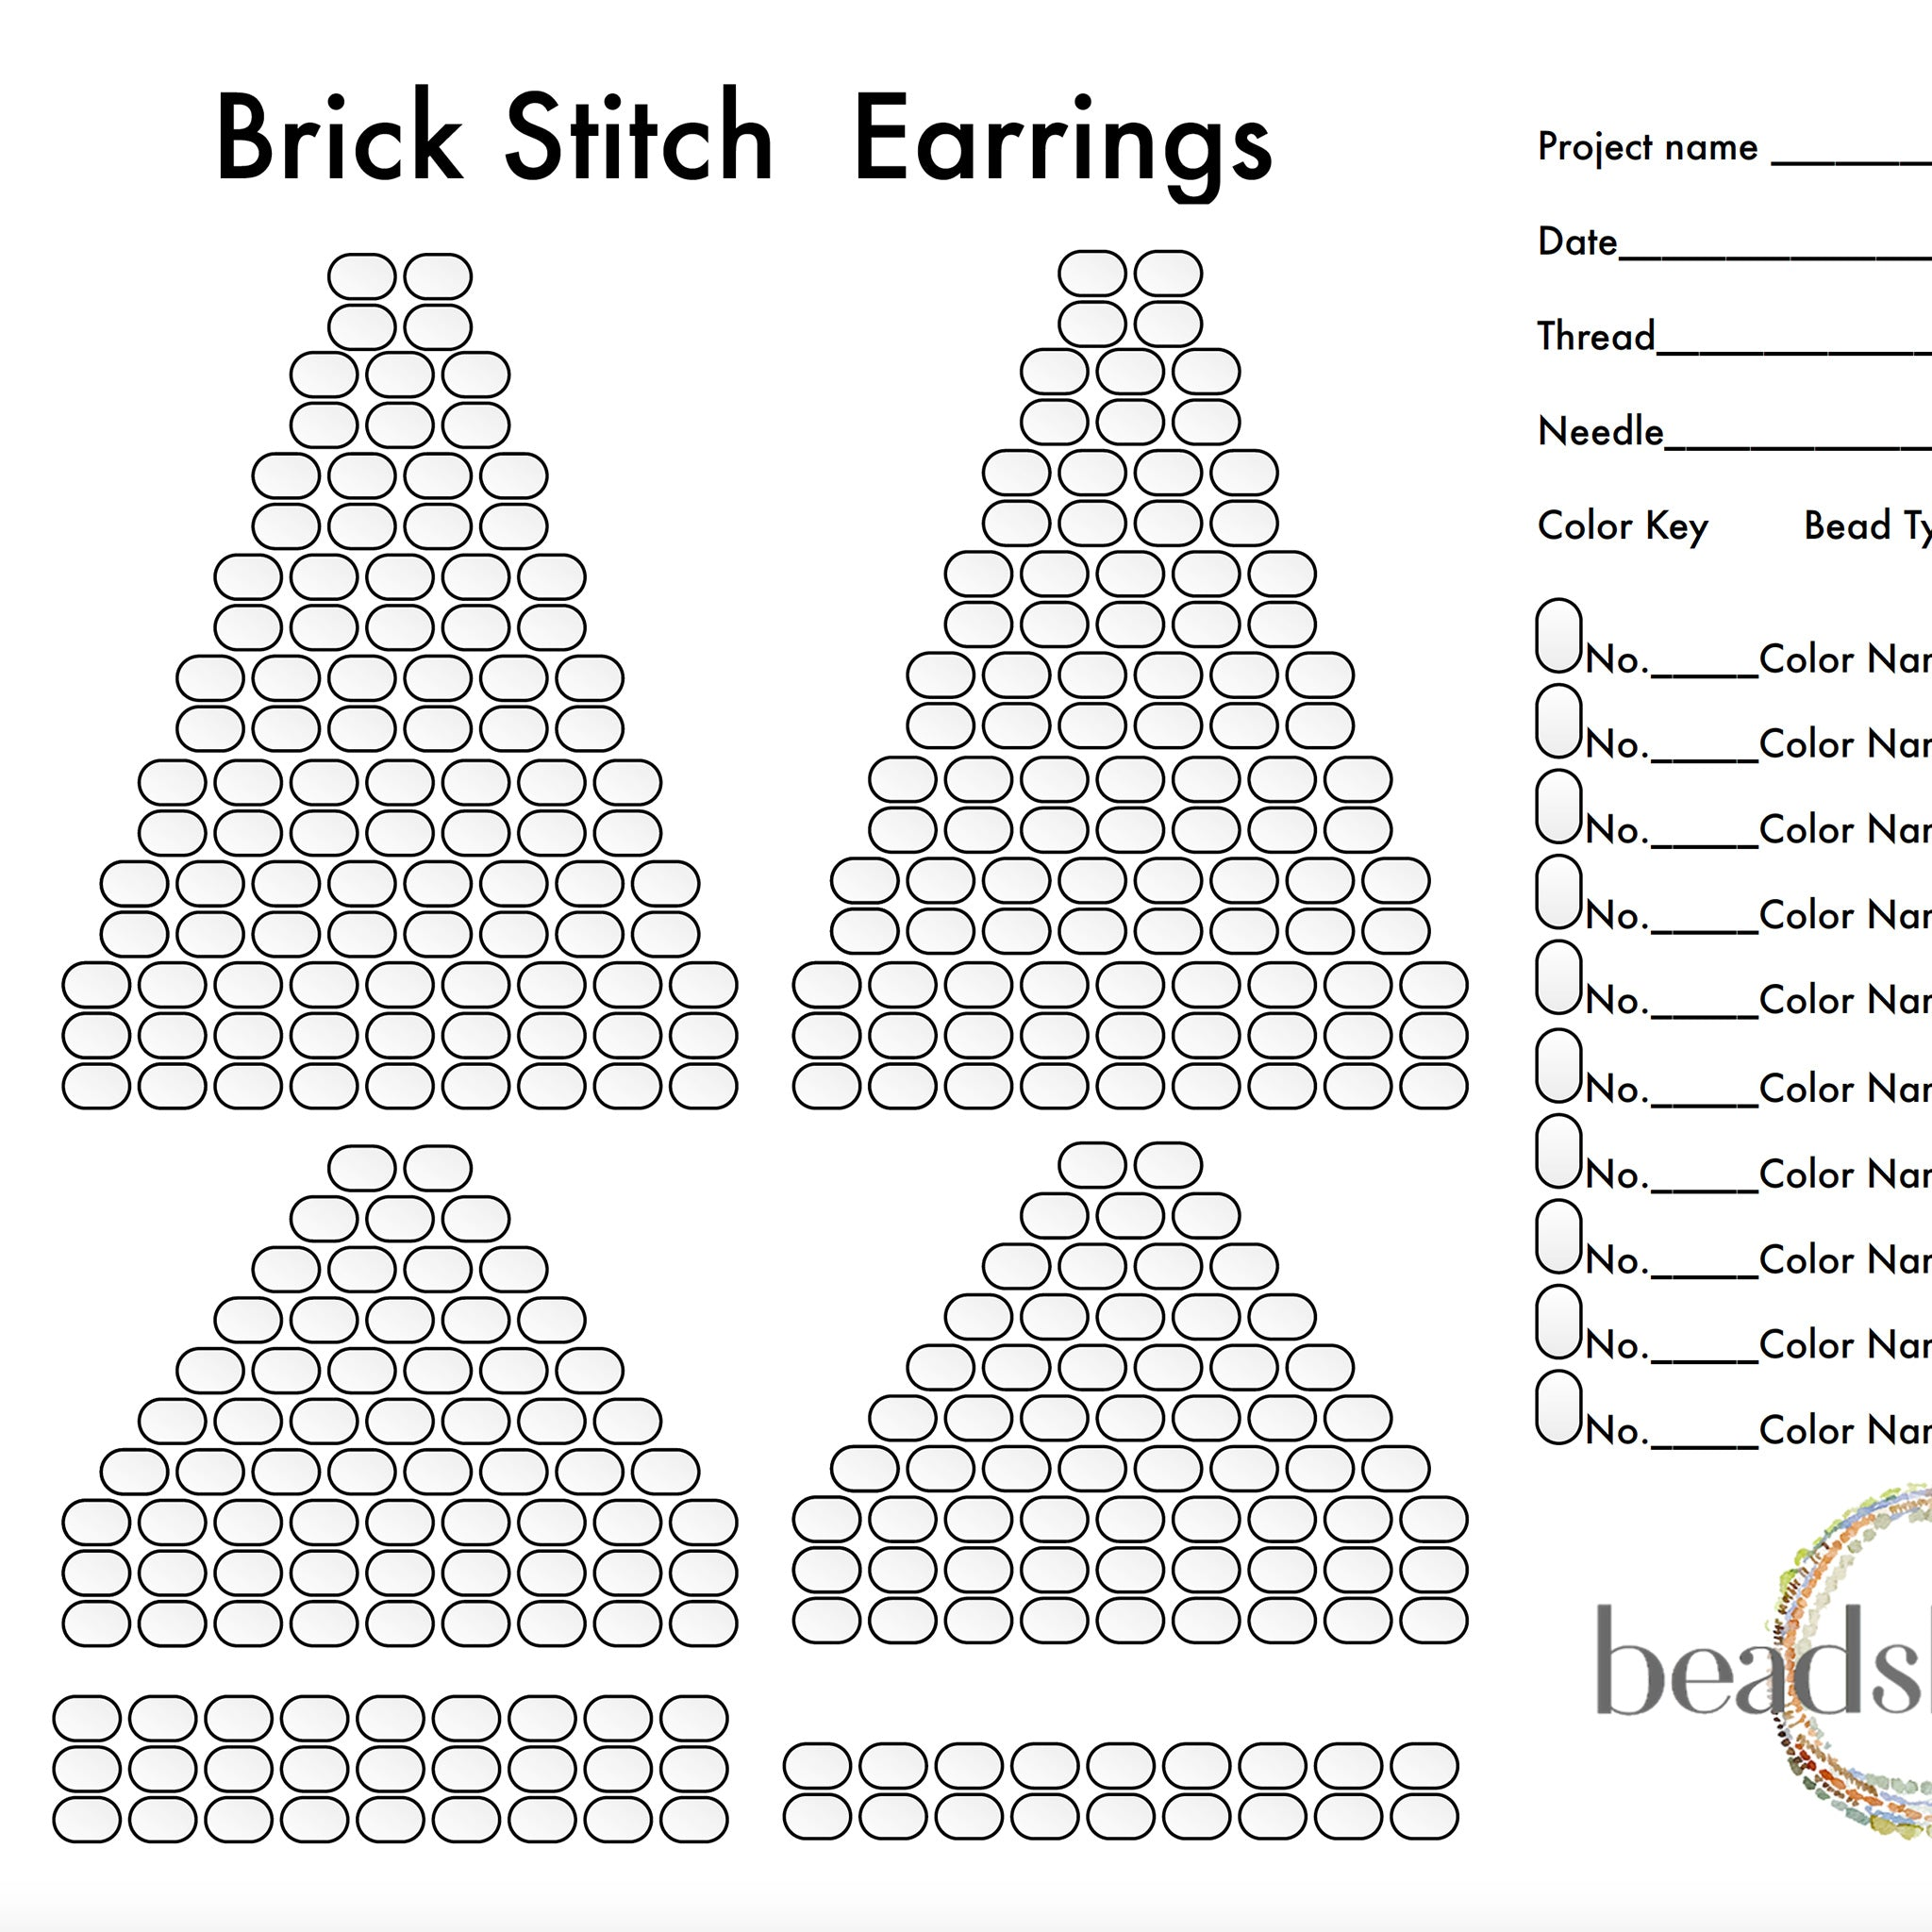 Brick Stitch Earrings Graph